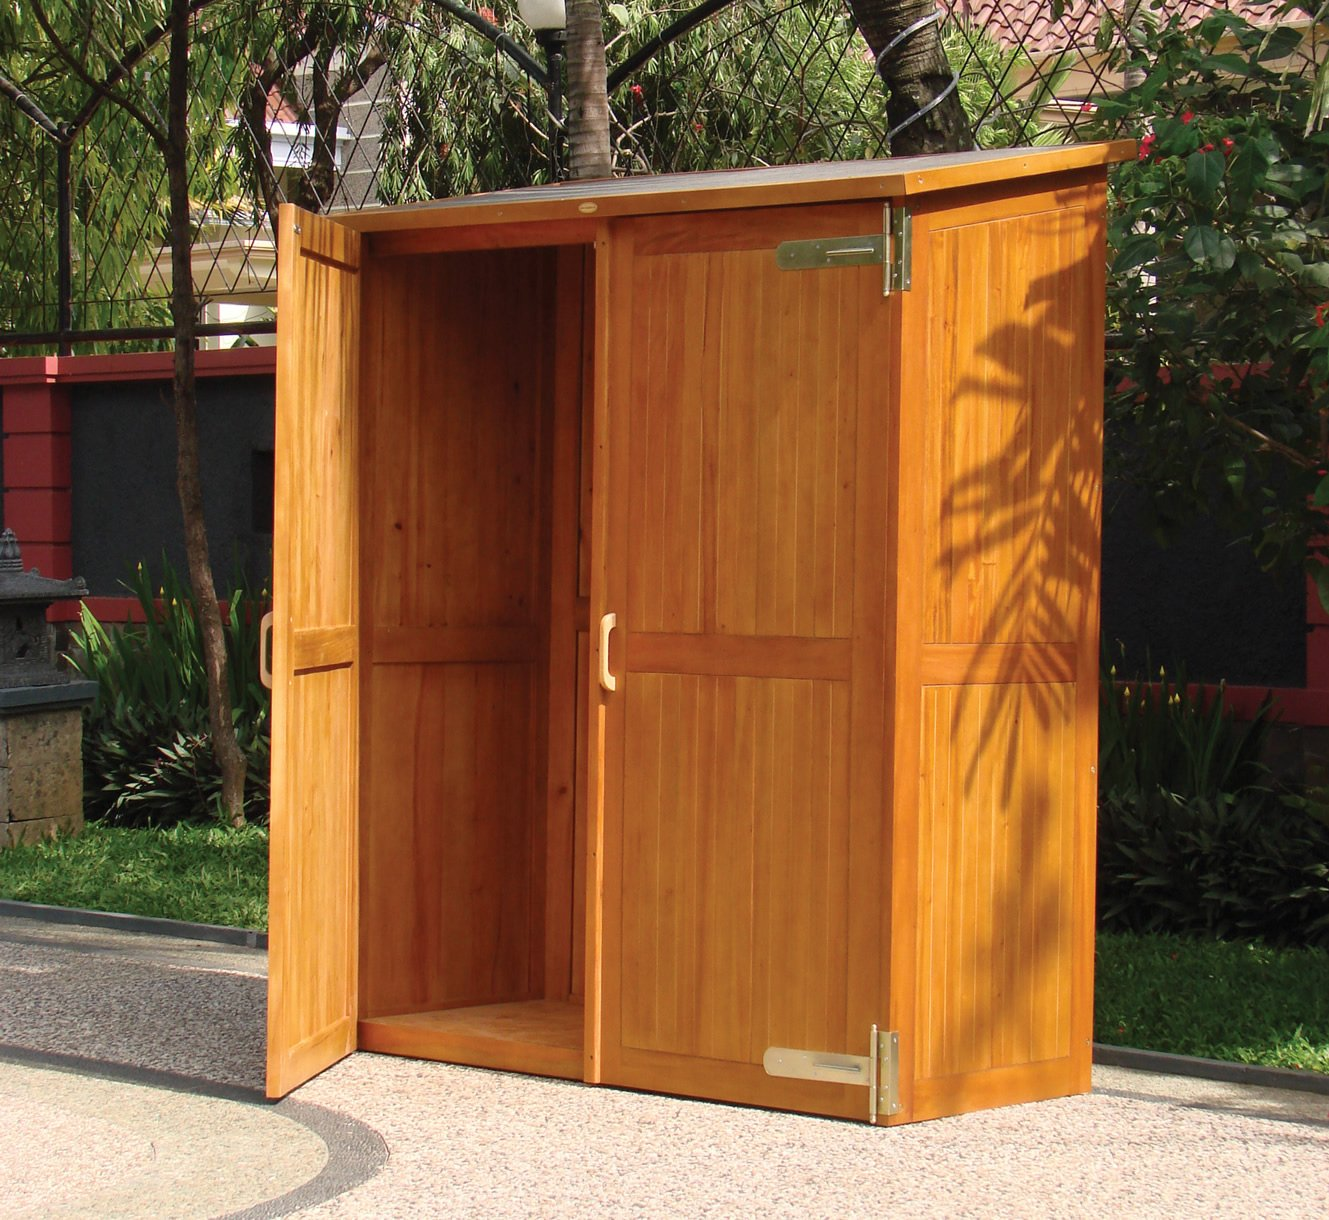 Loren best garden shed for Outdoor tool shed